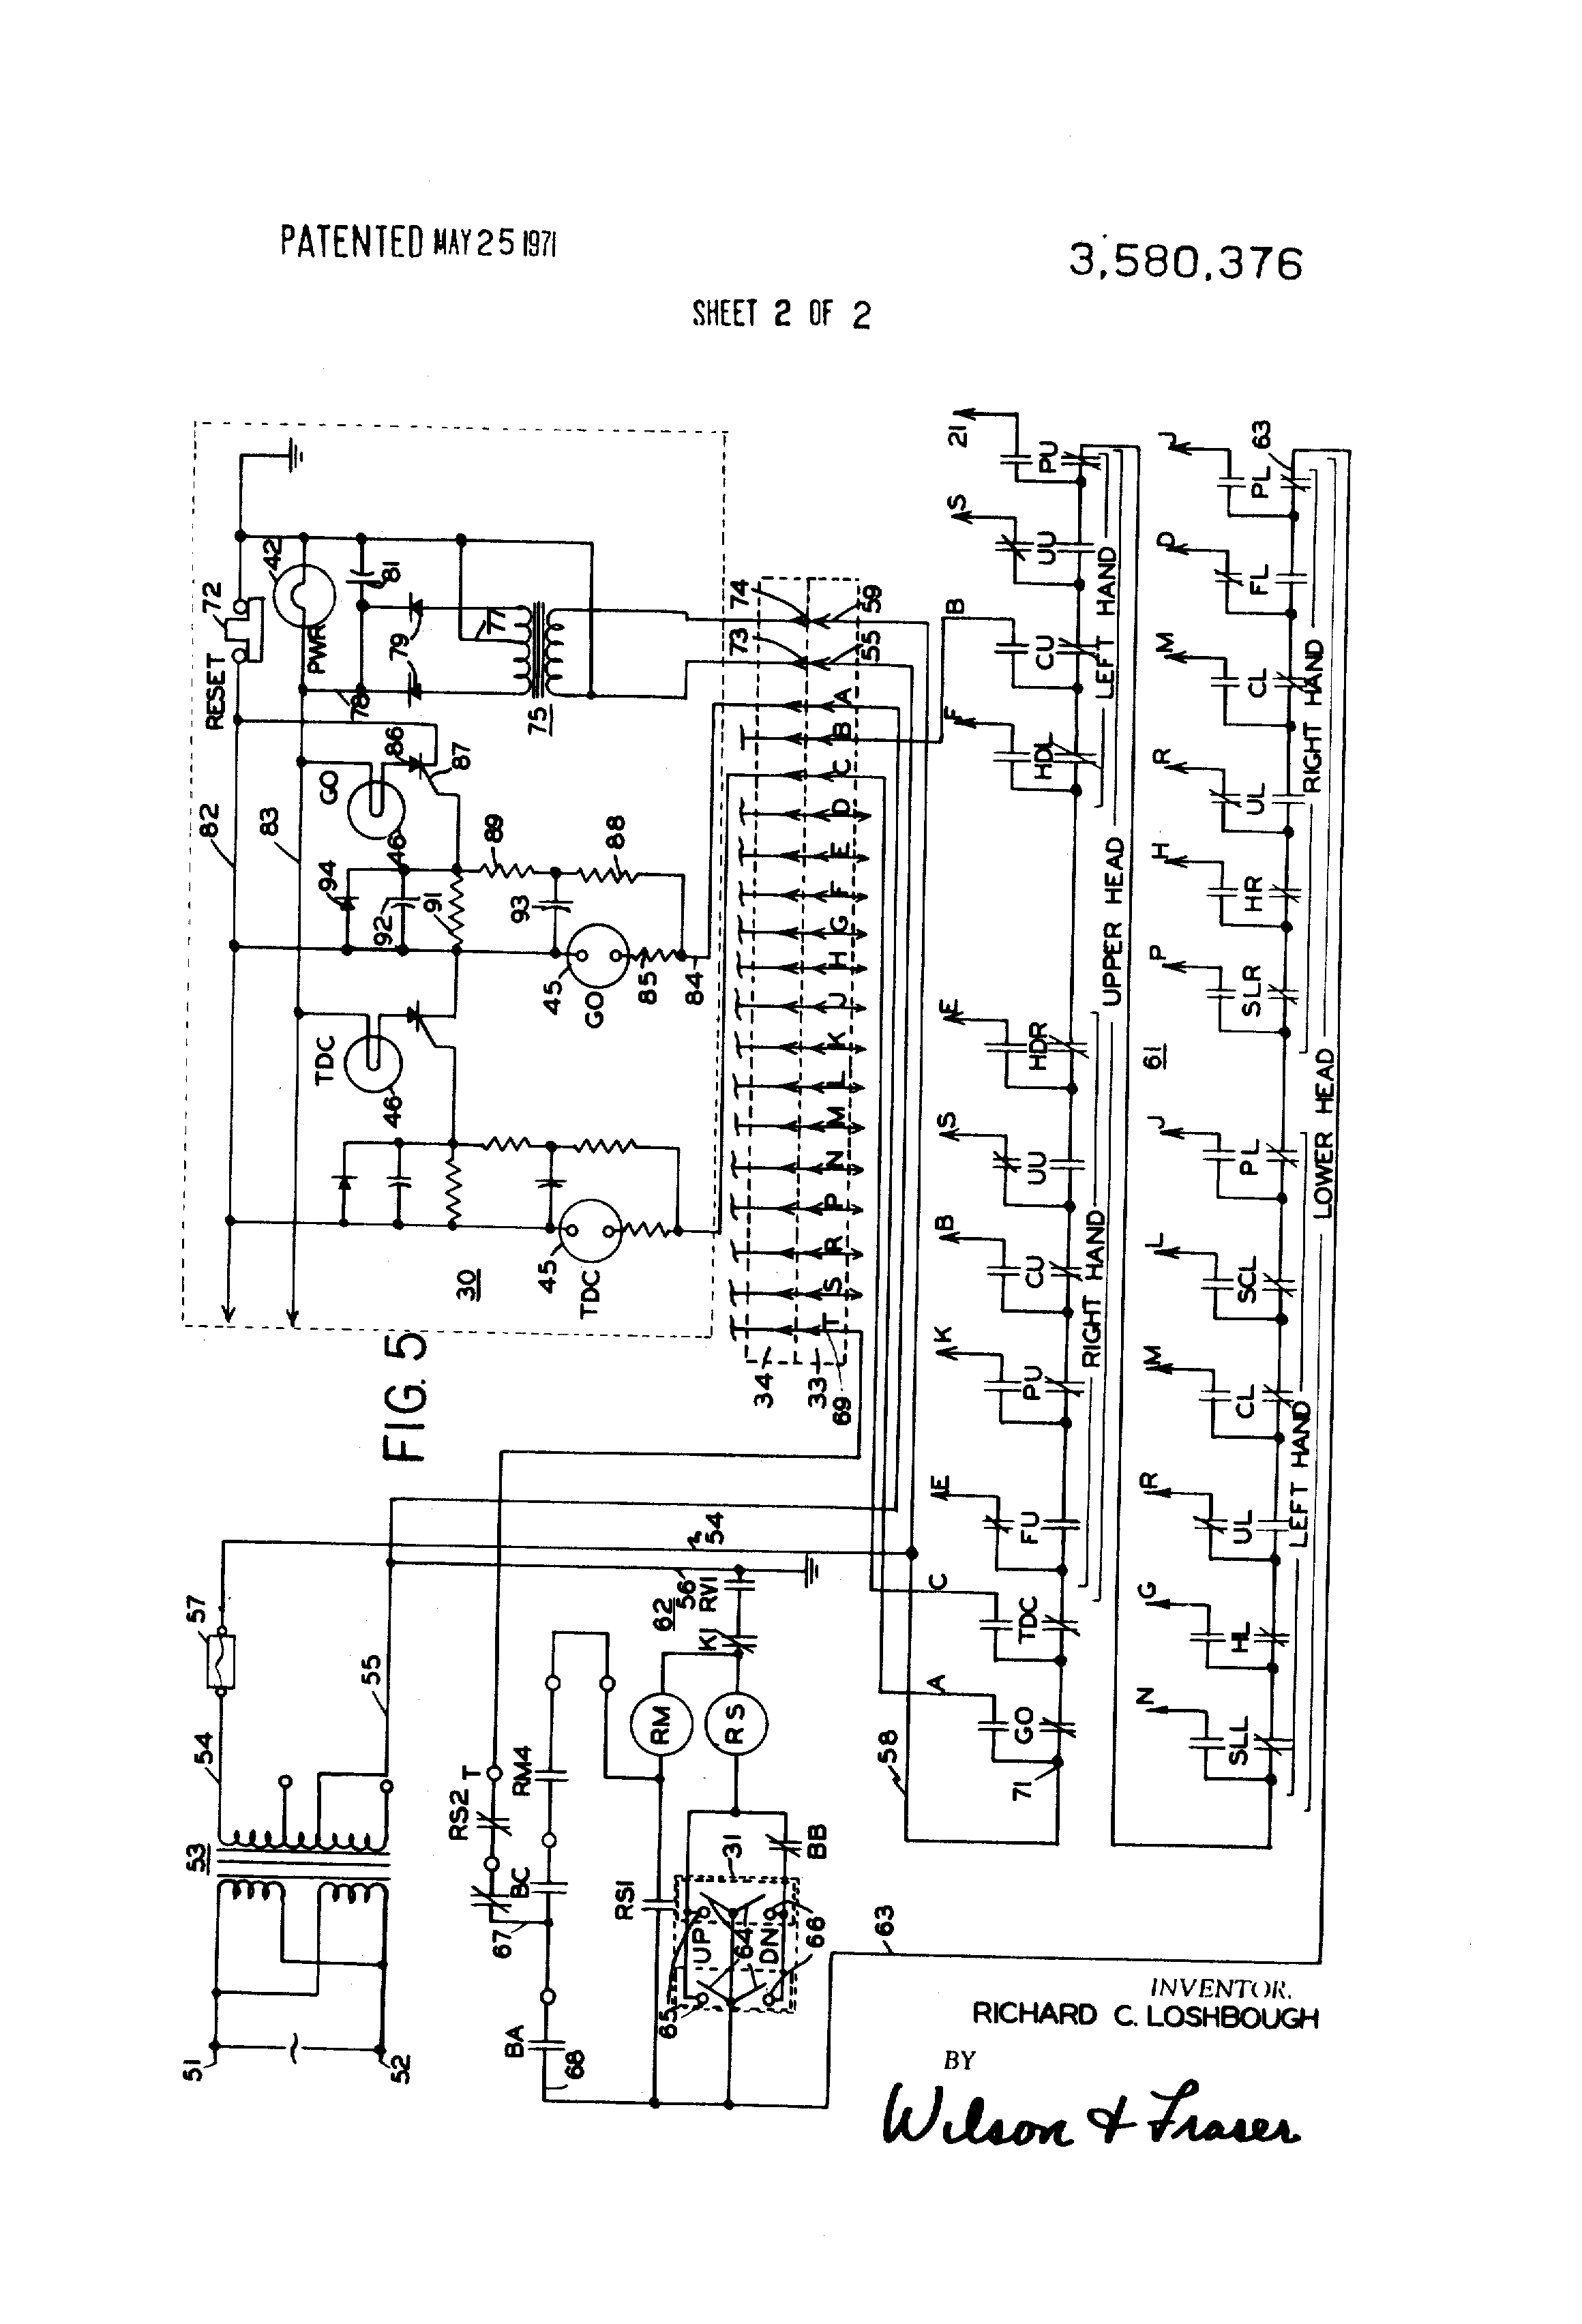 Z45 Genie Lift Wiring Diagram